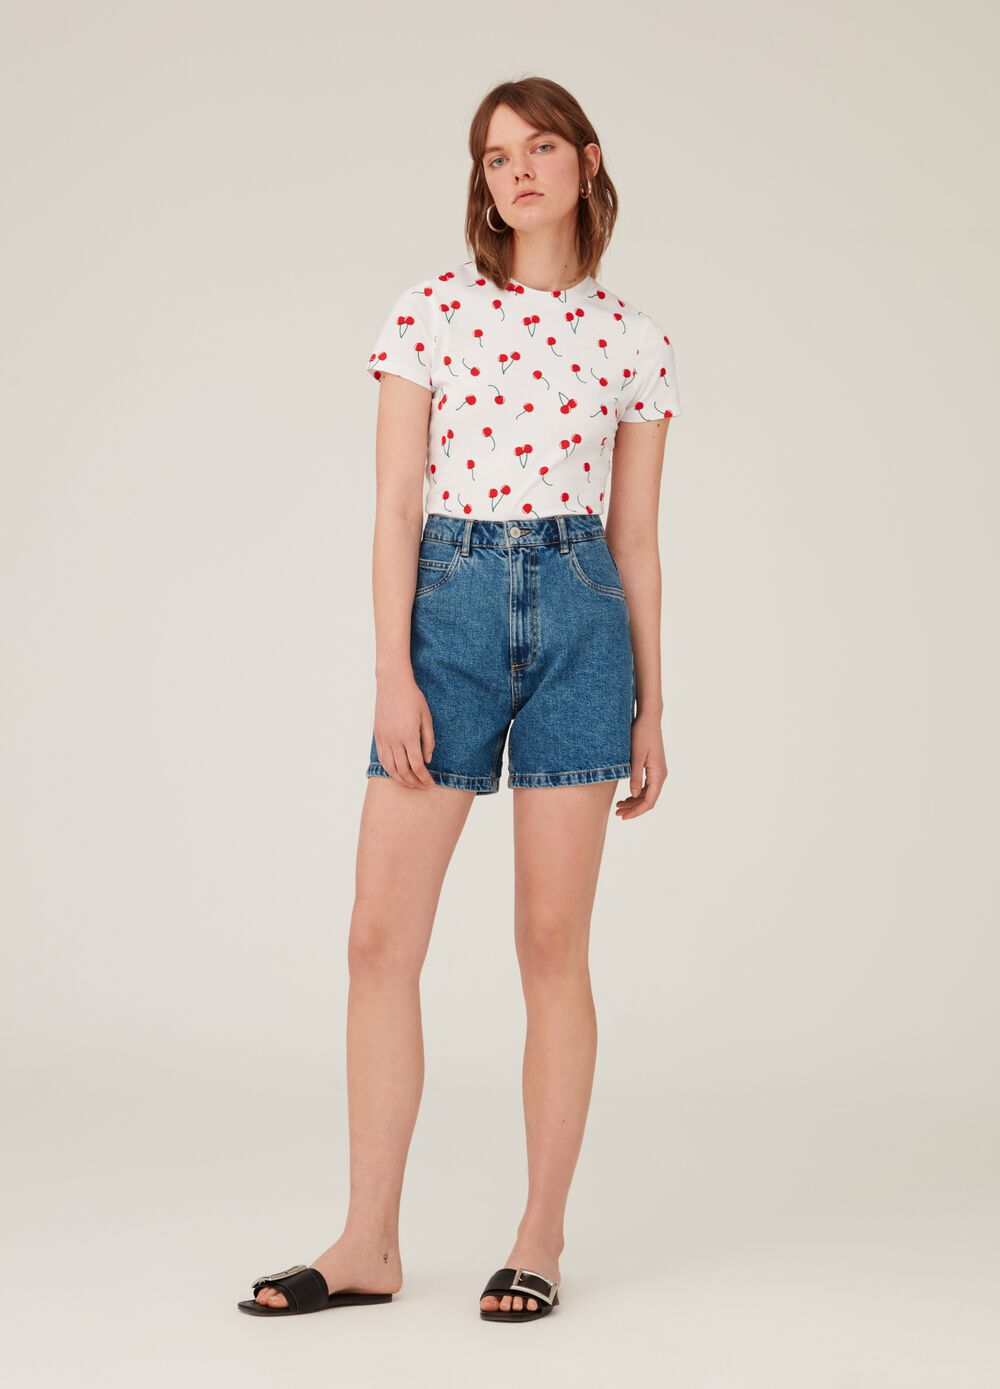 100% cotton T-shirt with cherry pattern